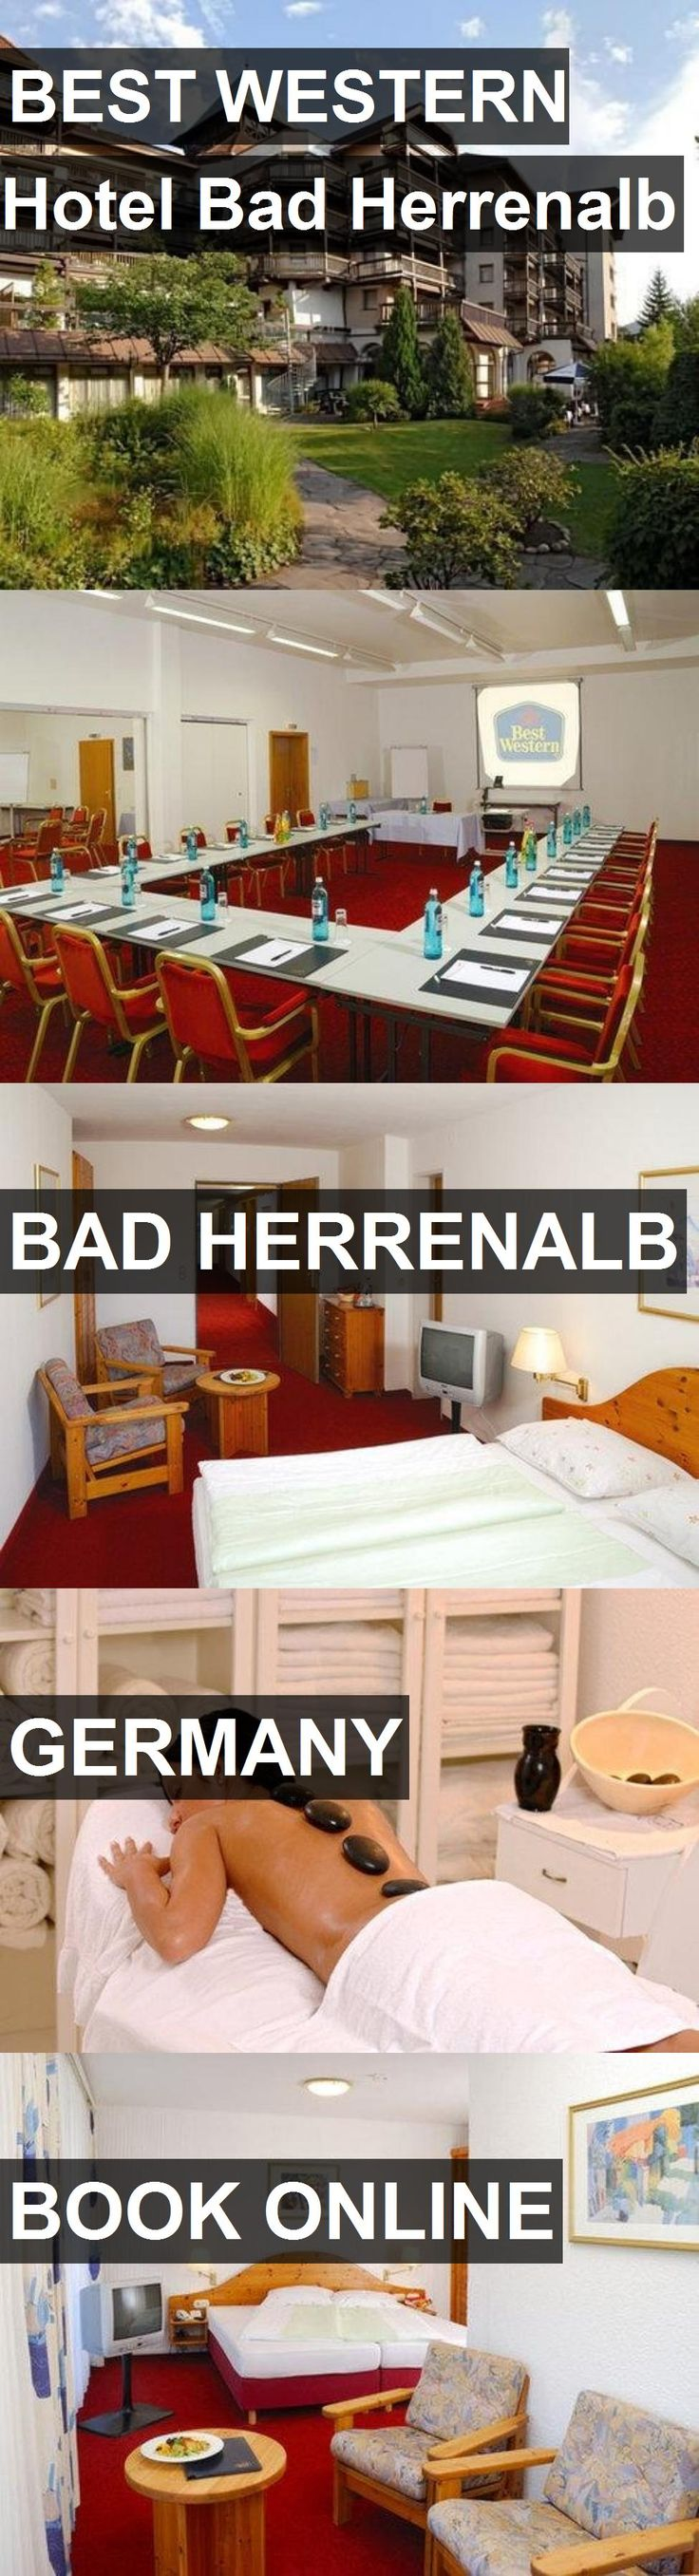 BEST WESTERN Hotel Bad Herrenalb in Bad Herrenalb, Germany. For more information, photos, reviews and best prices please follow the link. #Germany #BadHerrenalb #travel #vacation #hotel